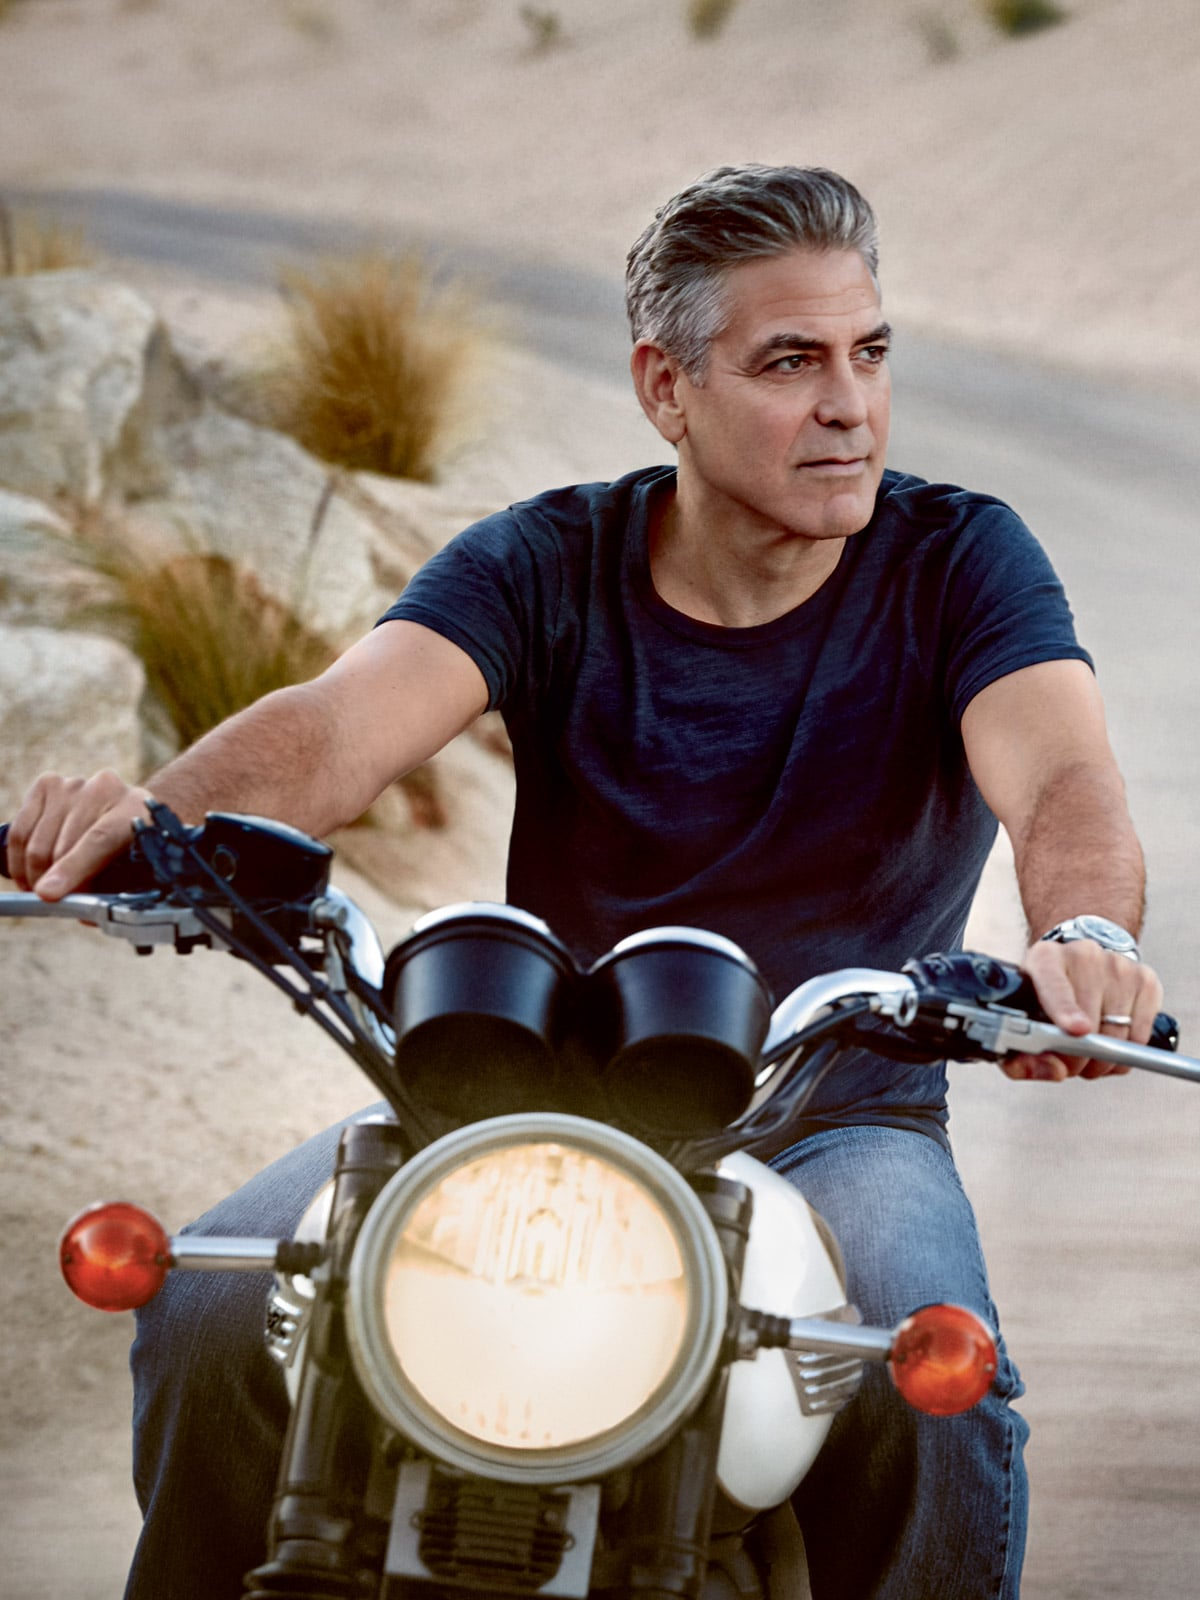 George Clooney riding a motorcycle while wearing the Omega Speedmaster '57 watch